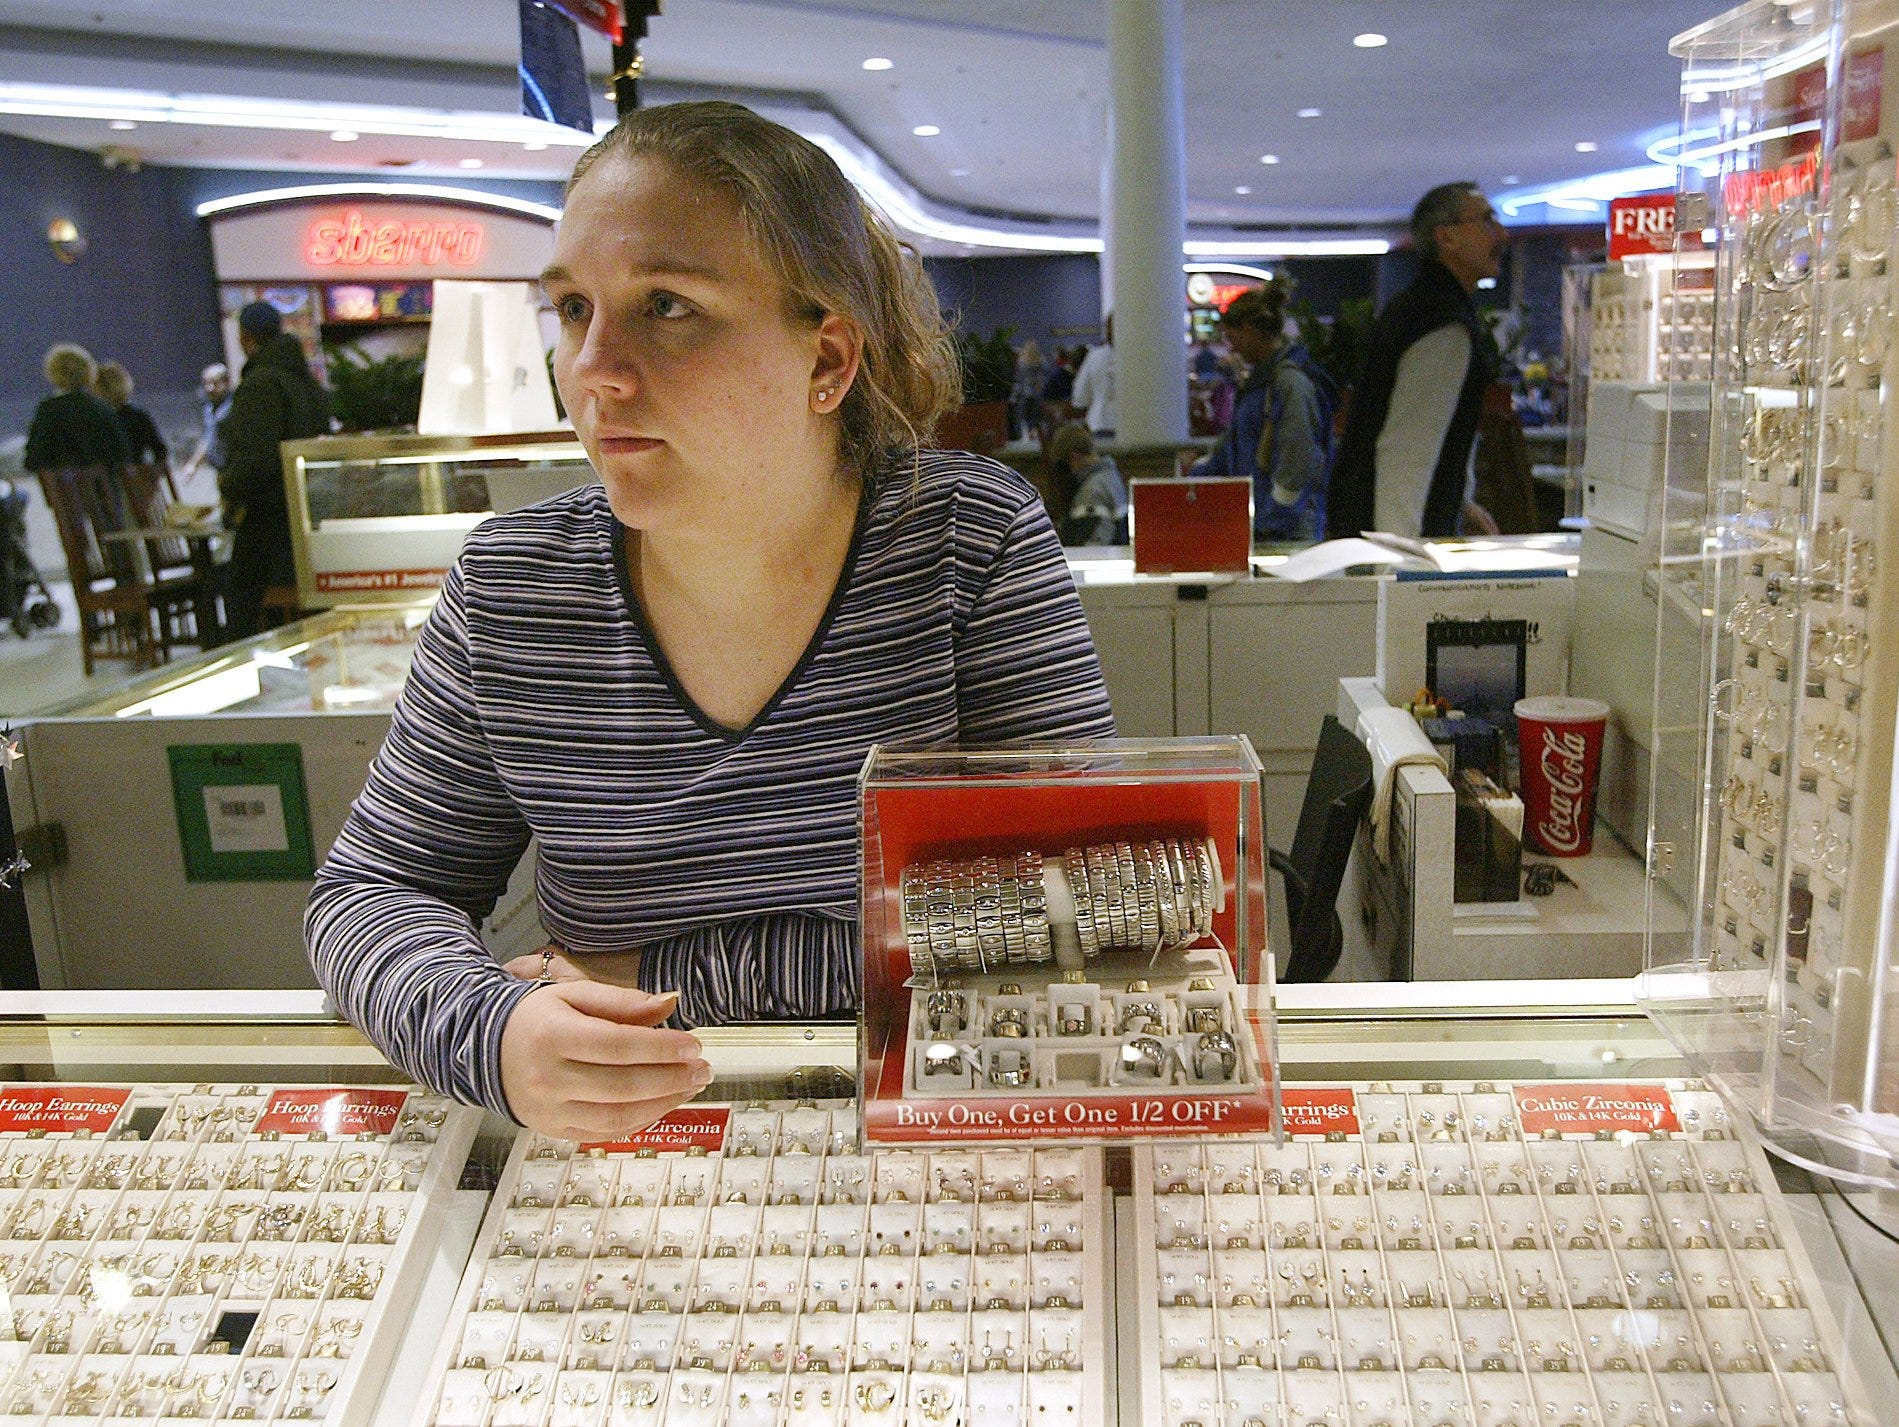 Angela Gray of Des Moines, South, at her job at Piercing Pagoda at Valley West Mall in West Des Moines on Tuesday, Dec. 23, 2003.